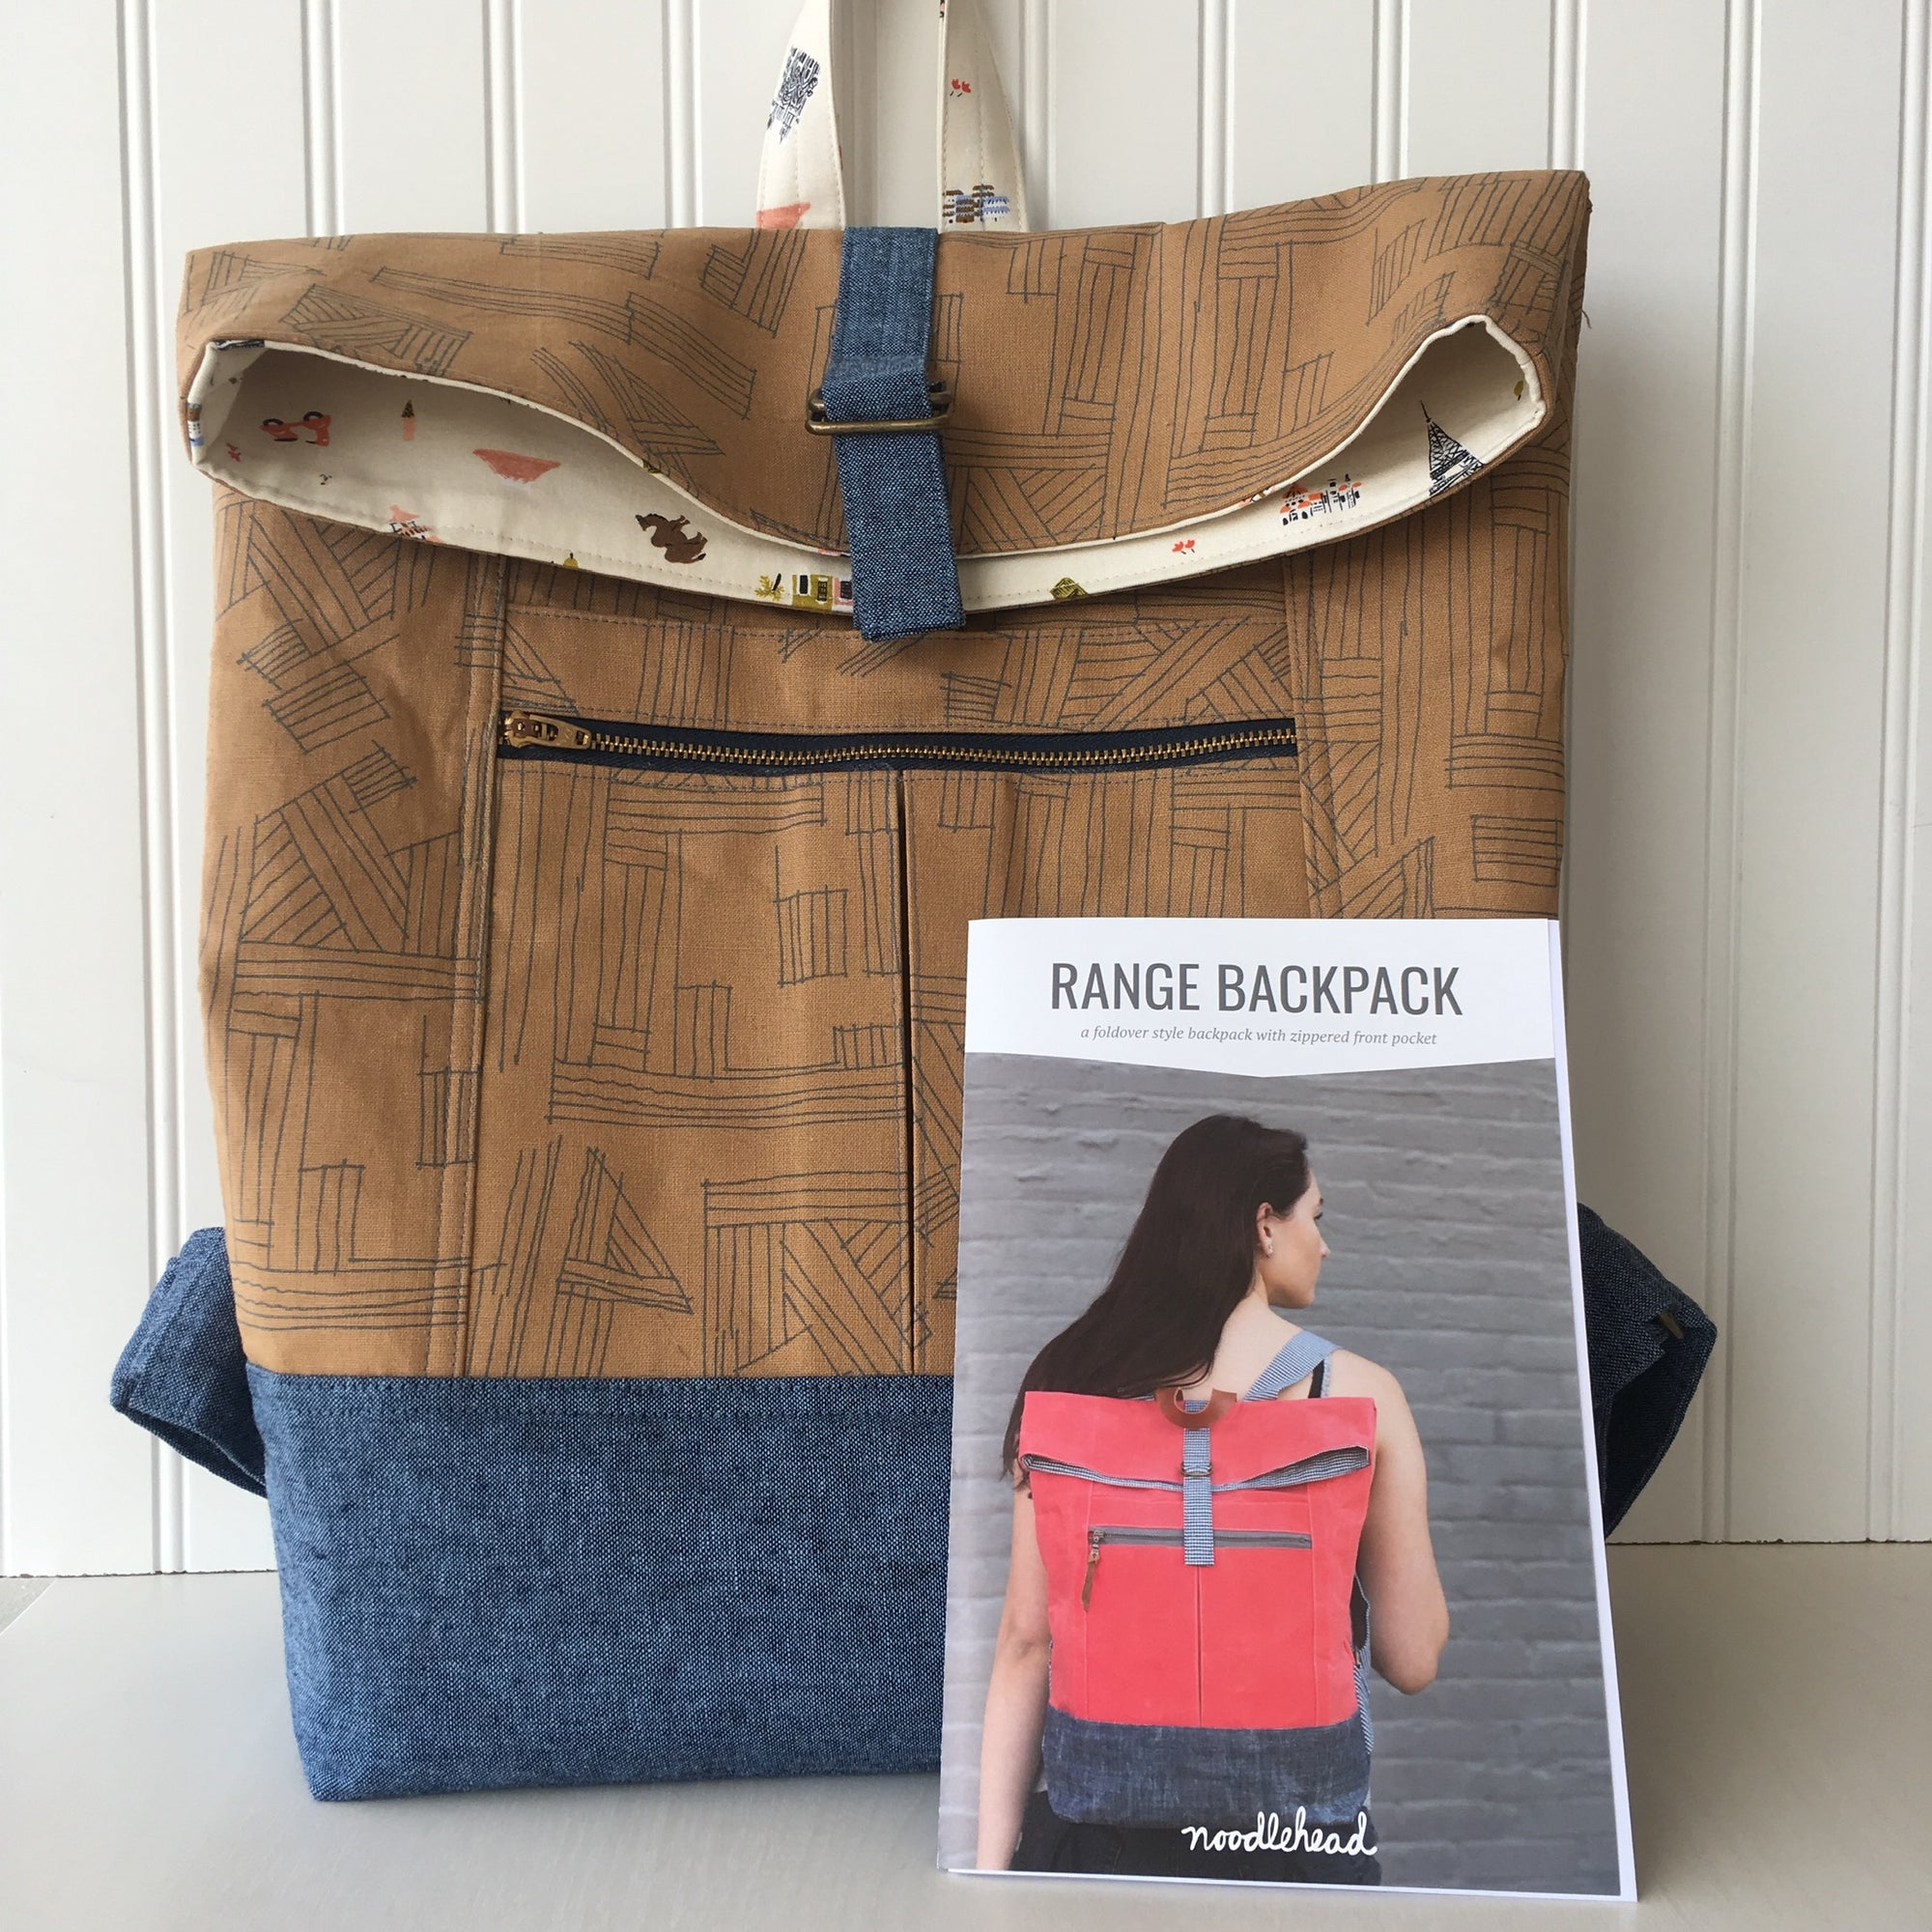 Sewing 302: Range Backpack 08/03 + 08/17